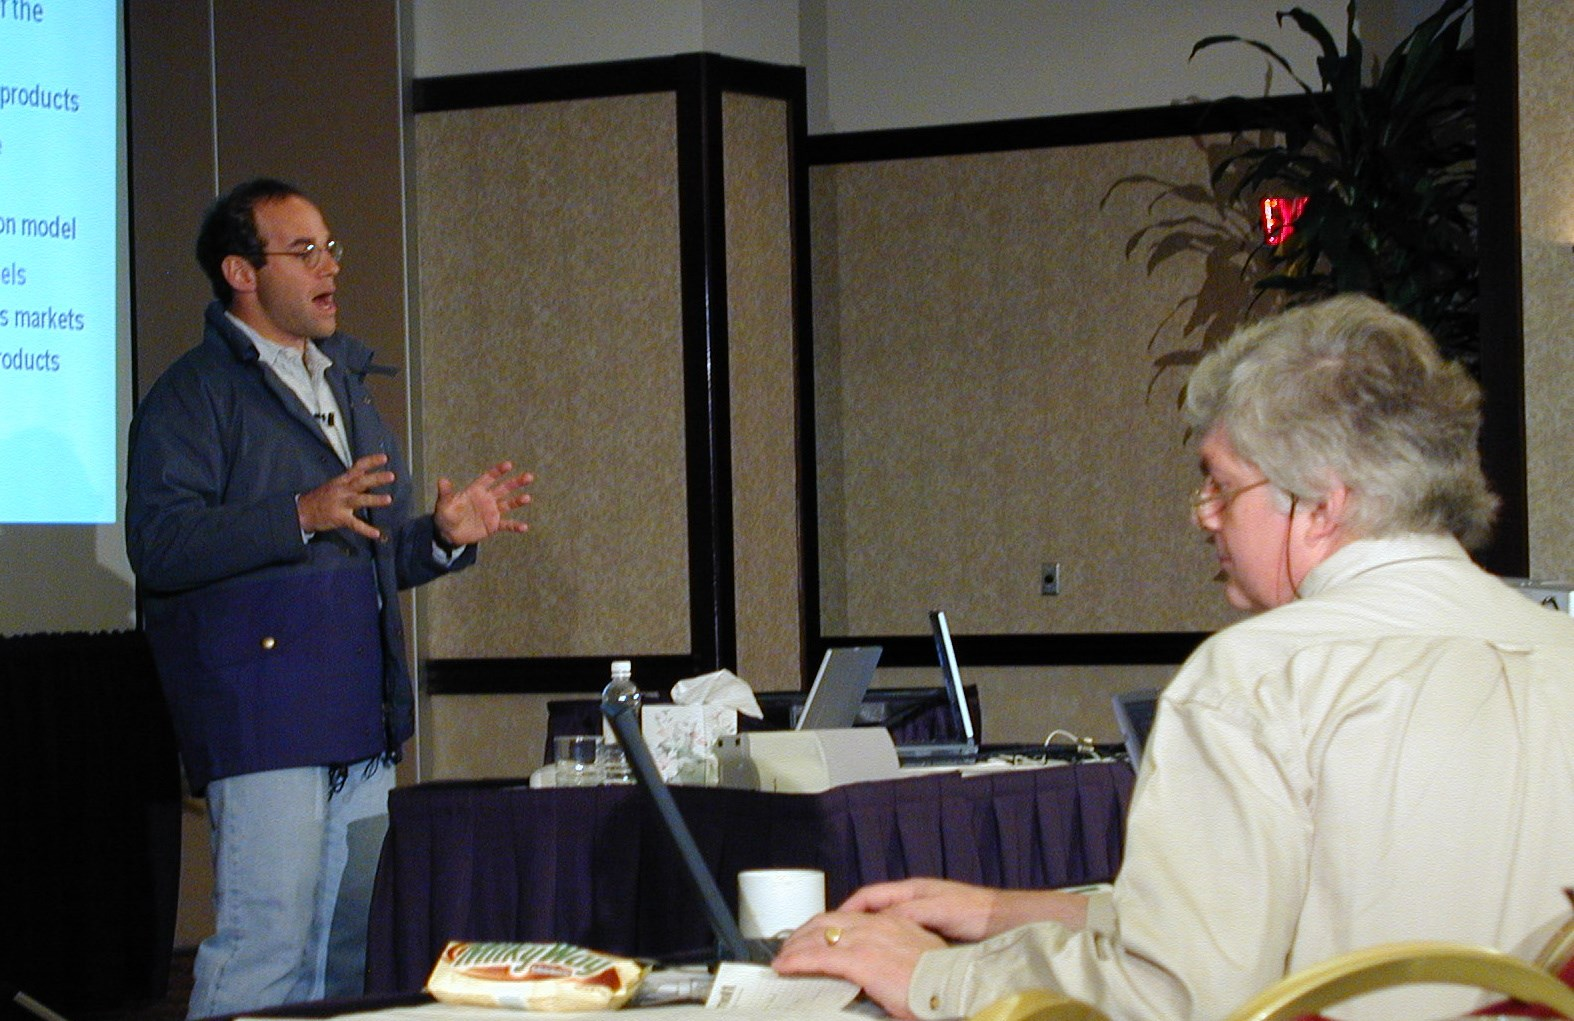 Peter Levine presenting to Richard at Cutting Edge 2000